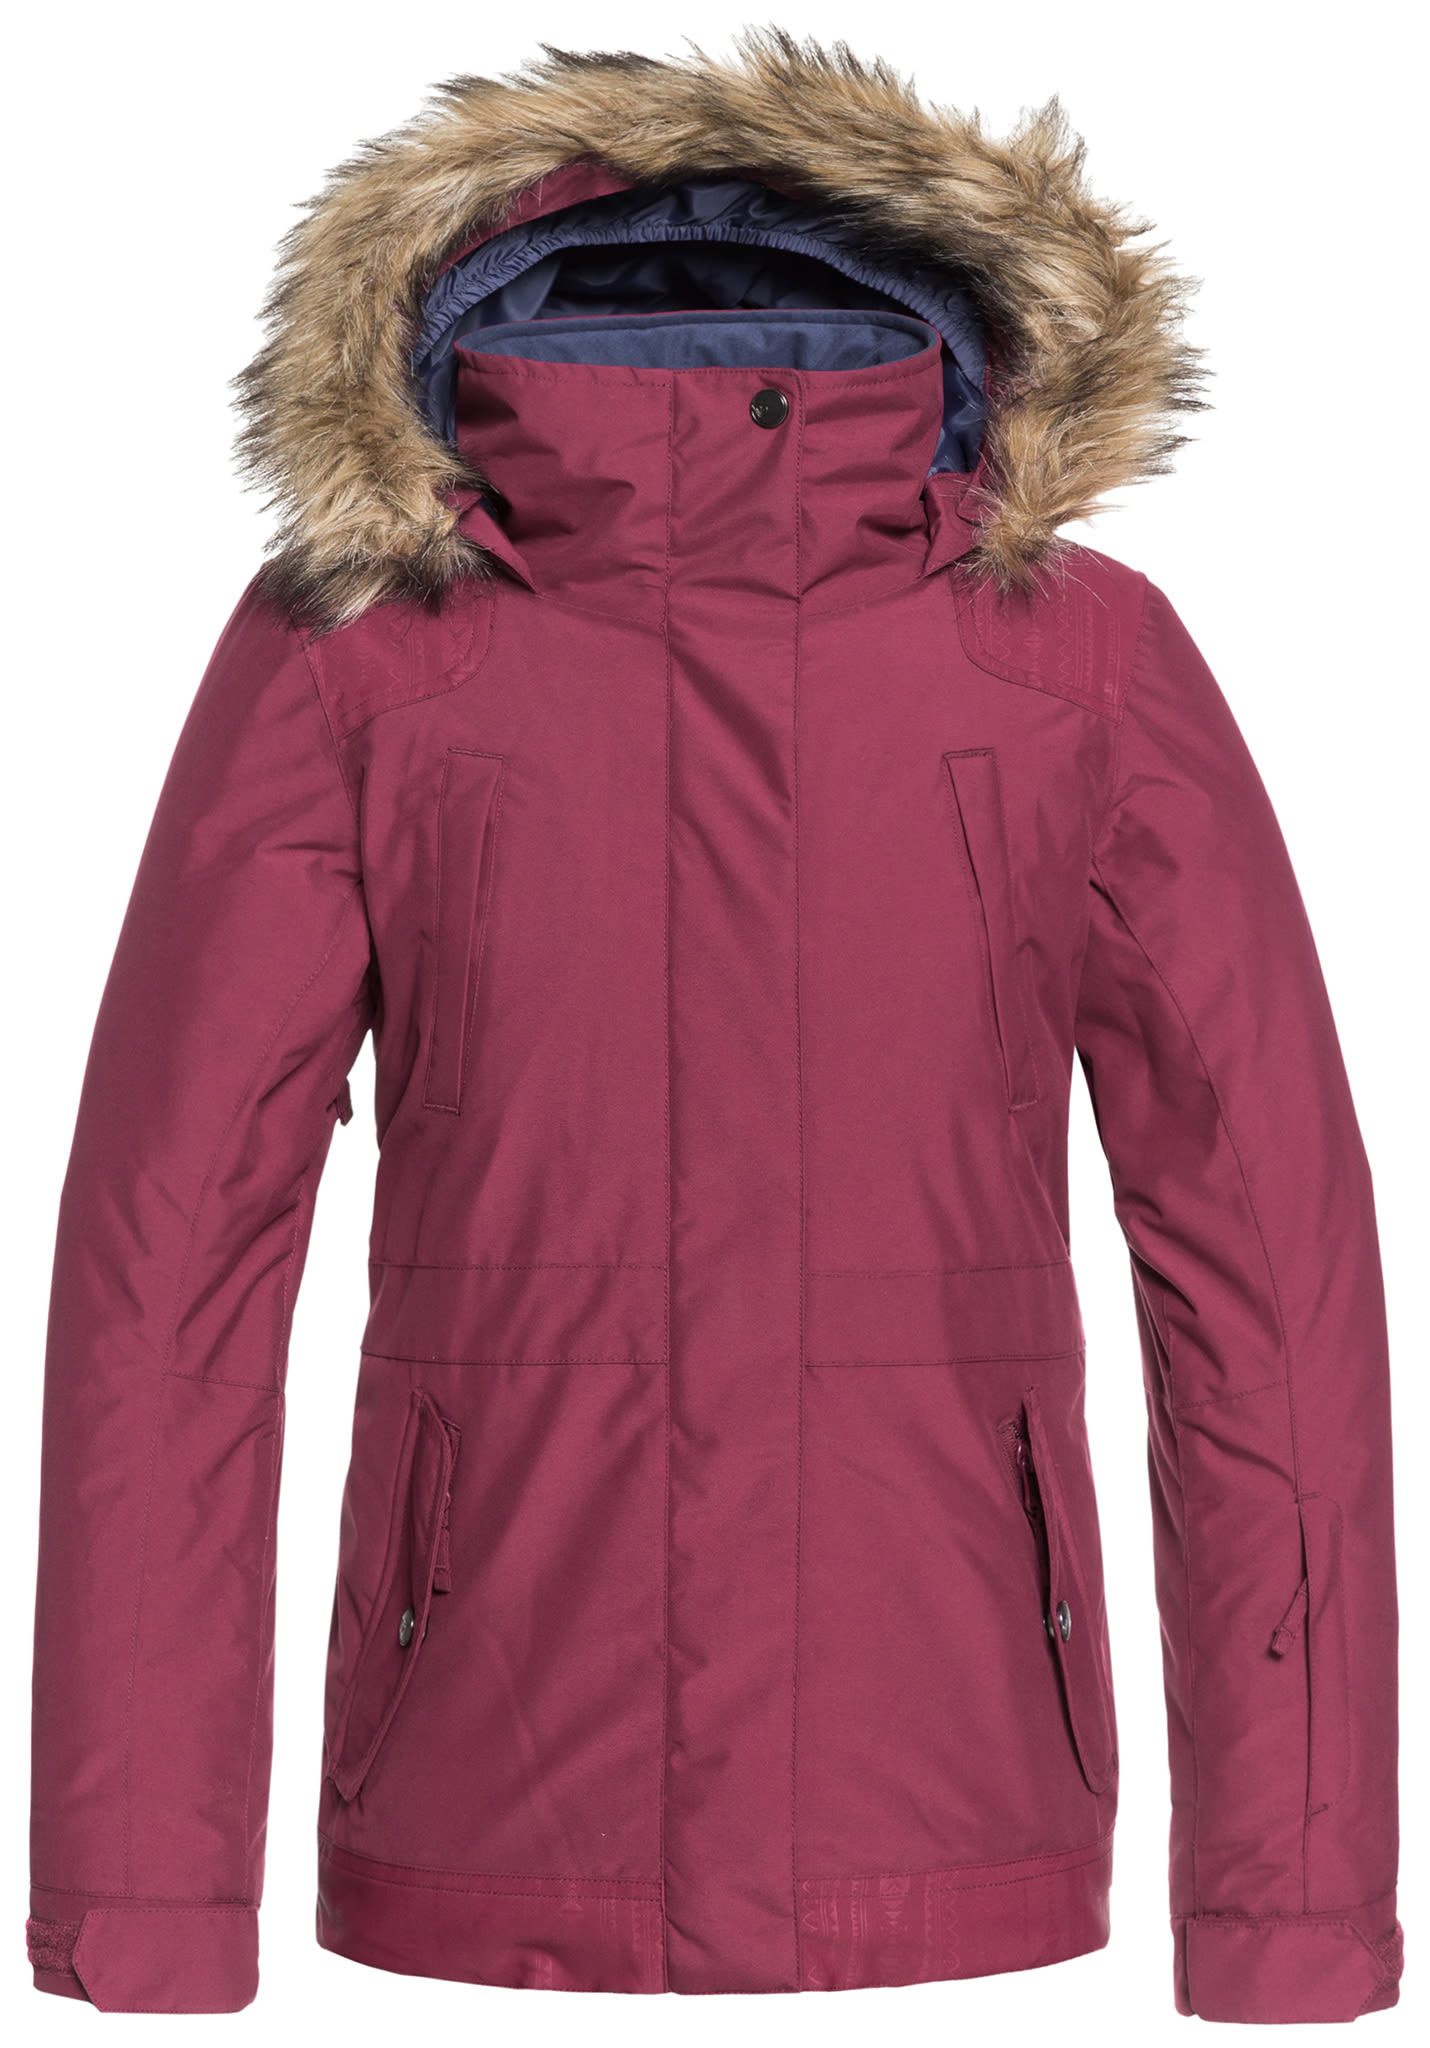 bfa11093ff38e Roxy Tribe - Veste de snowboard pour Fille - Rouge - Planet Sports